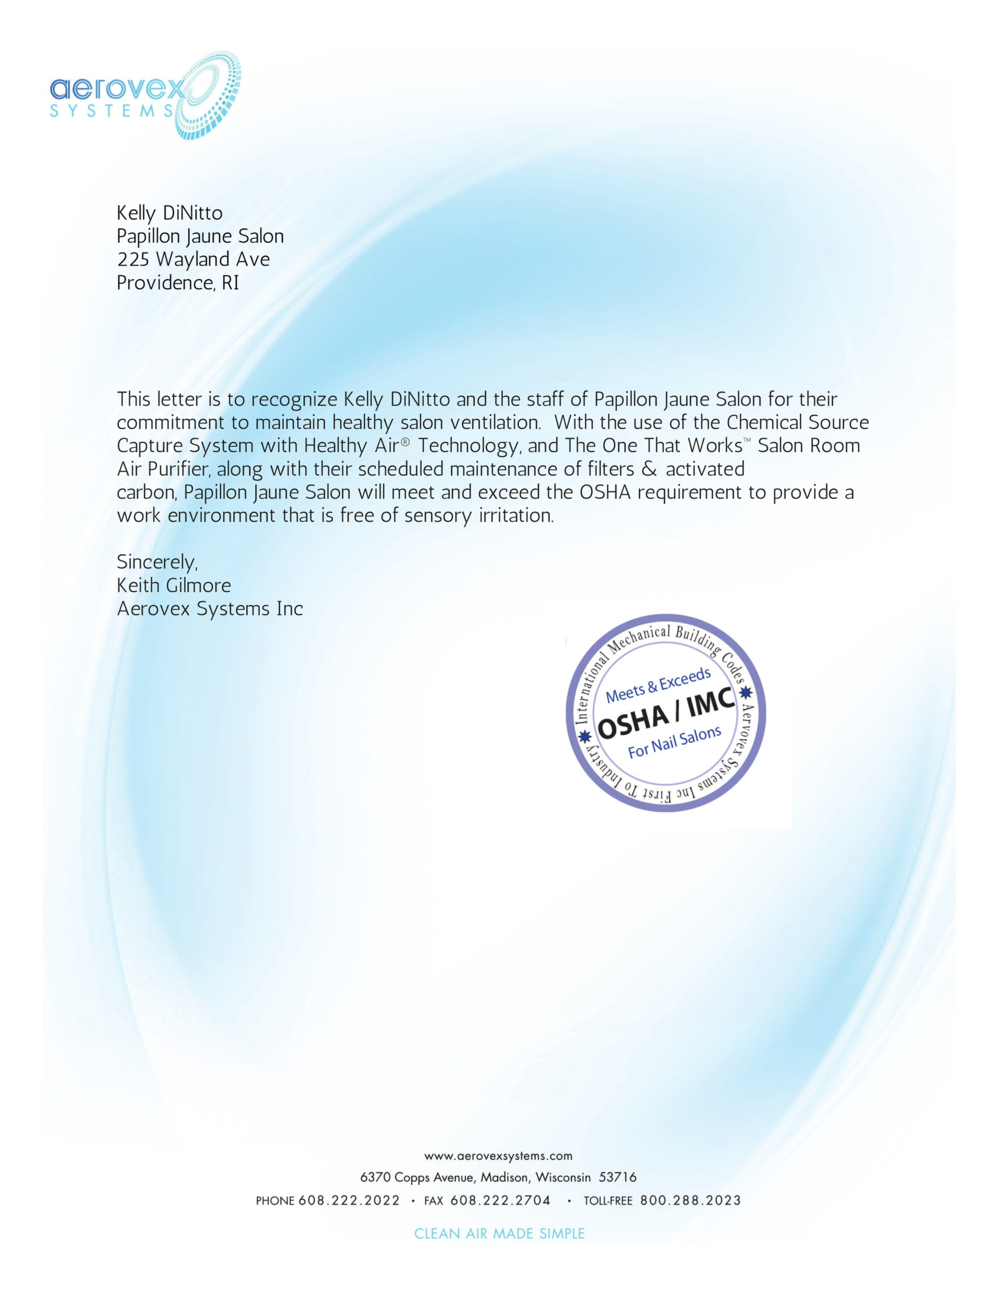 Aerovex Systems Recognition Letter.png